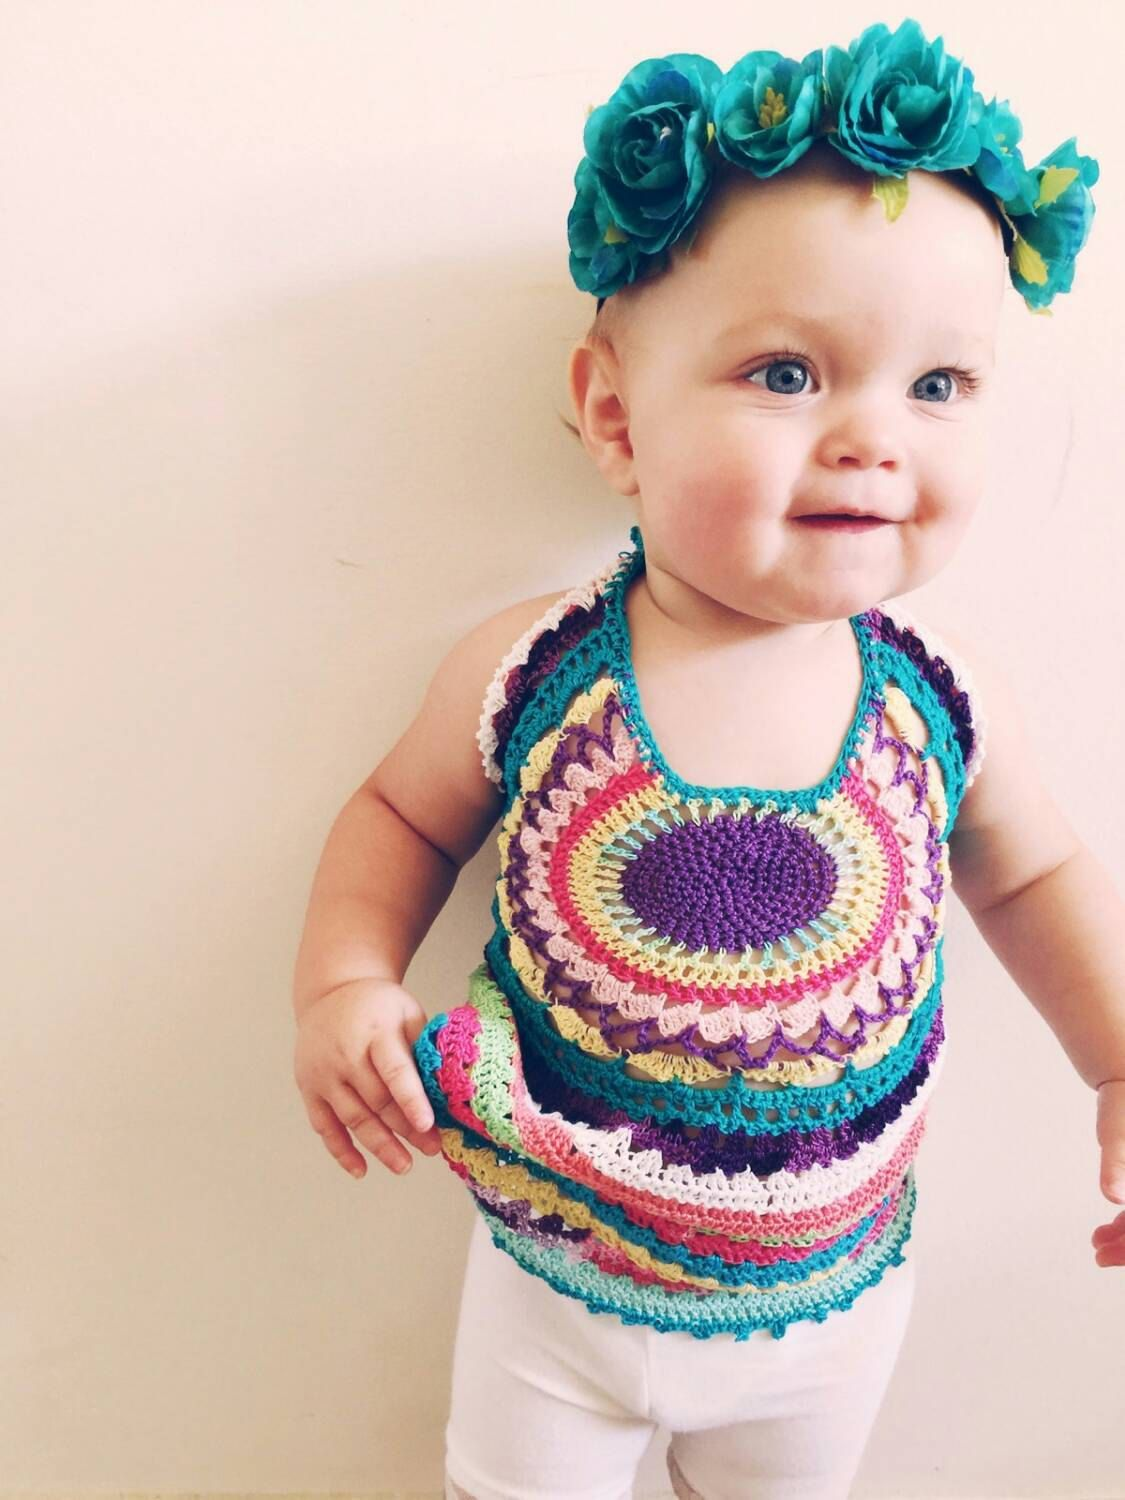 Chidrens halter top, kids crocheted top,kids hippie top, kids fashion, children's clothing - pinned by pin4etsy.com